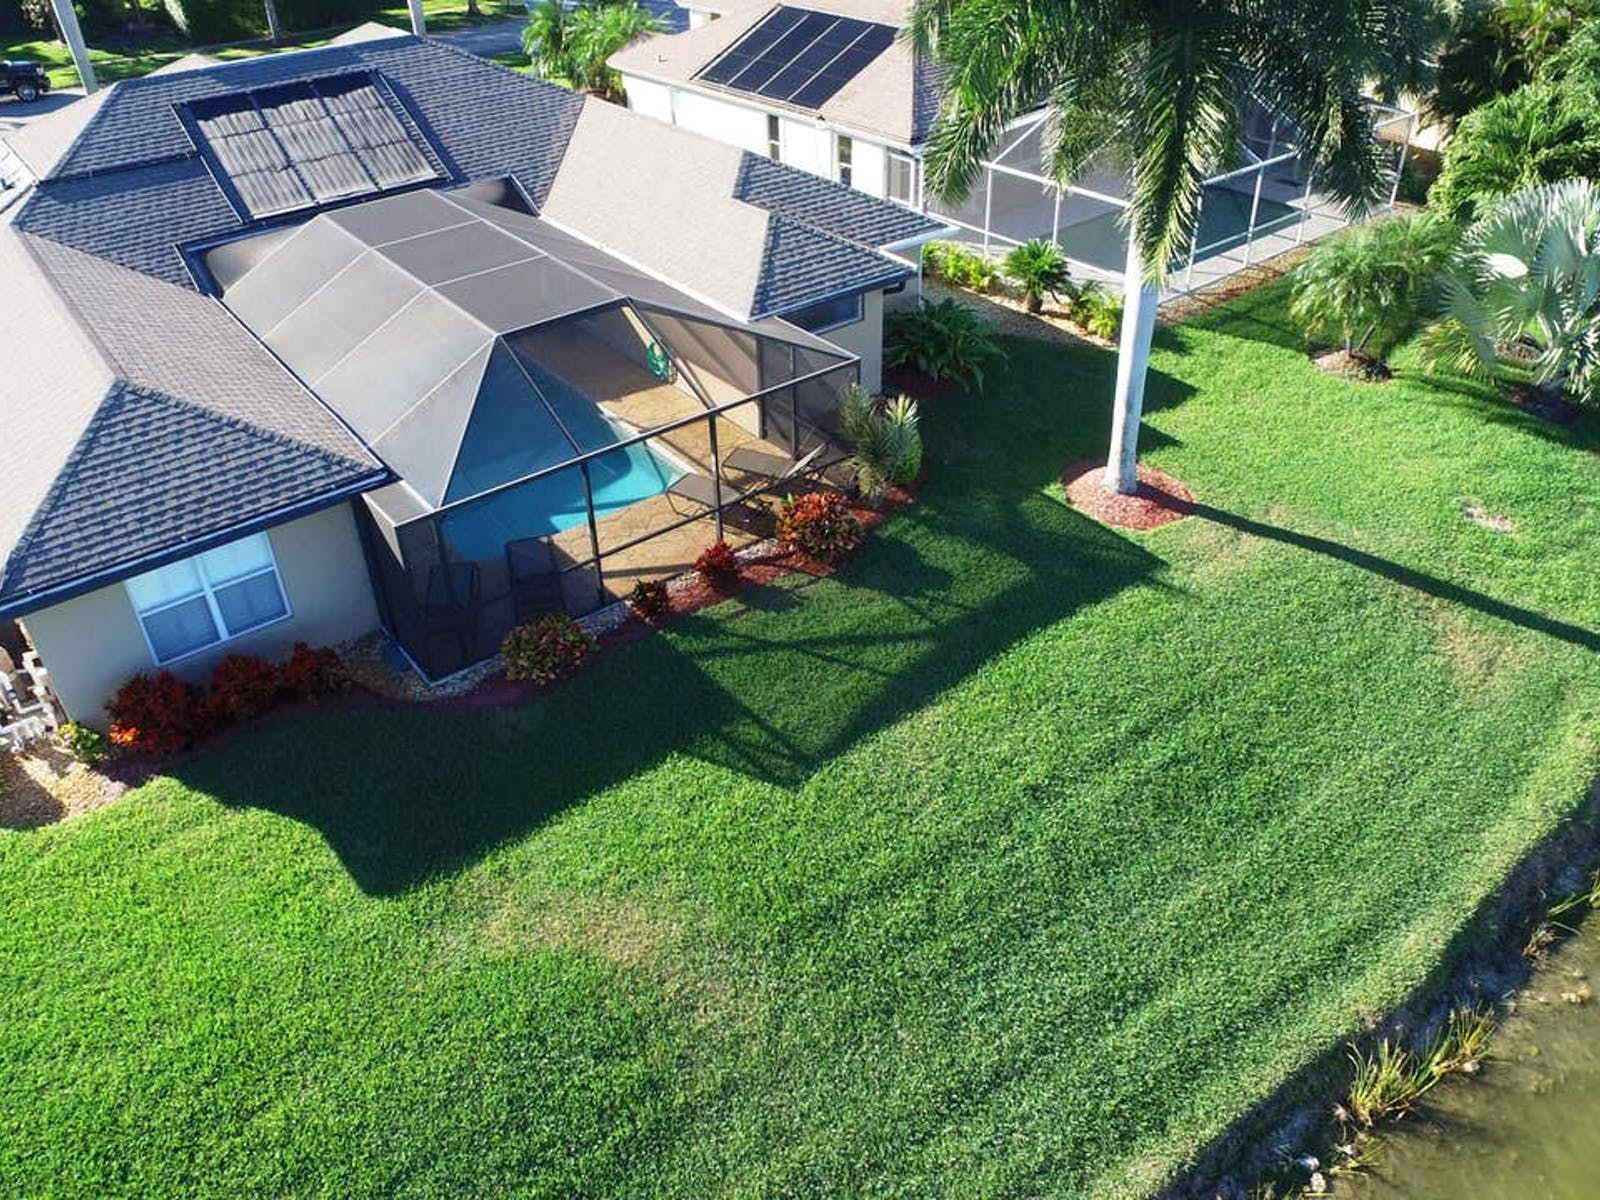 Vacation home rental in Naples with enclosed pool and manicured lawn